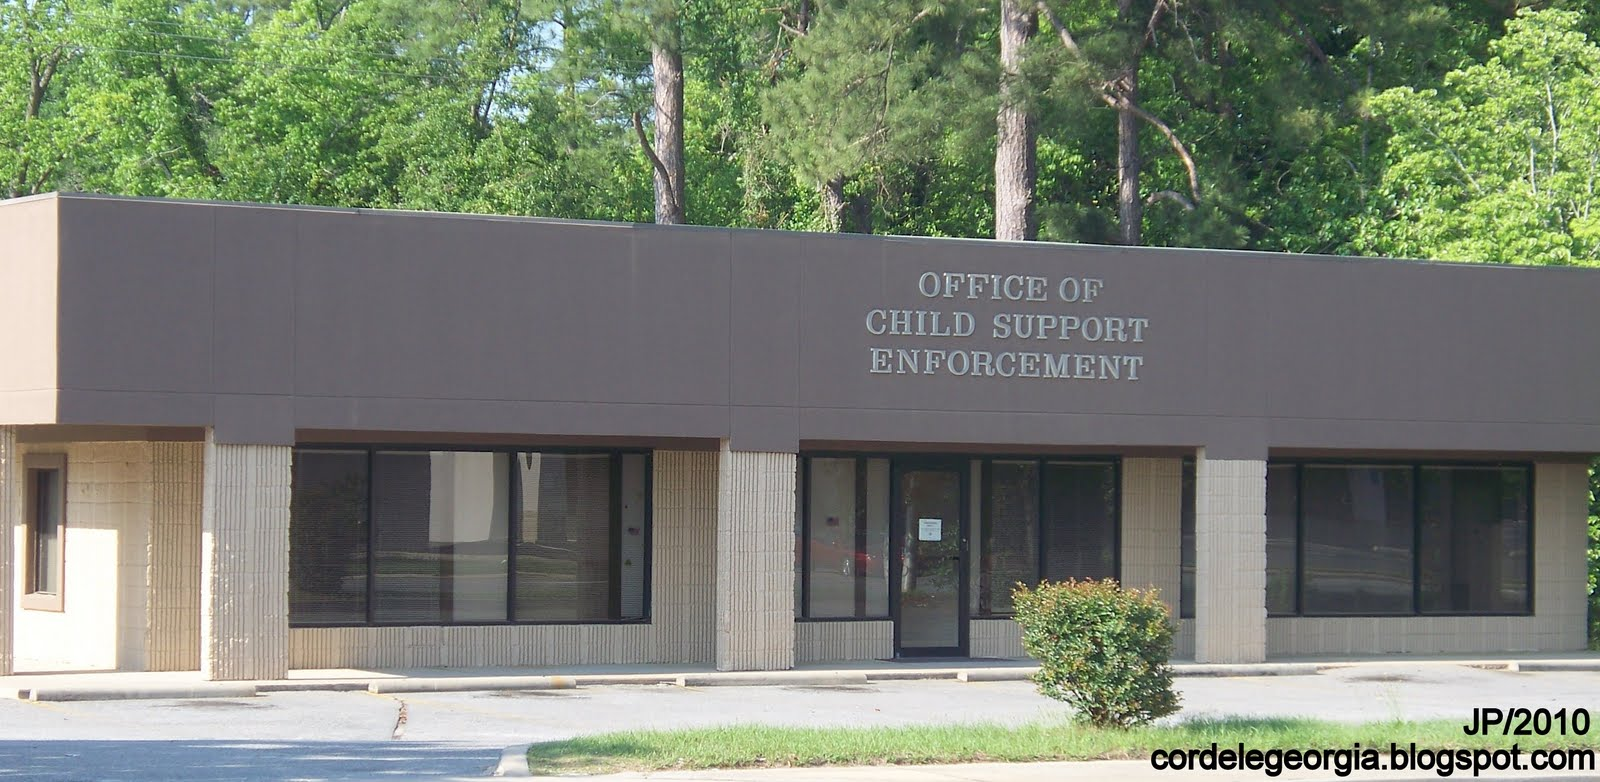 Cordele Georgia Crisp Watermelon Restaurant Attorney Bank. Sql Server Convert Float To Varchar. How To Set Up Debit Card How To Get Home Loan. Cerebral Palsy Medical Treatment. Ruger Sr 22 Pistol For Sale El Tiempo Com. Caliber Home Loans Reviews Curtis Auto Repair. Buy Email Addresses For Marketing. Advertising With Google Free Checking Houston. Stephens City Family Dentistry